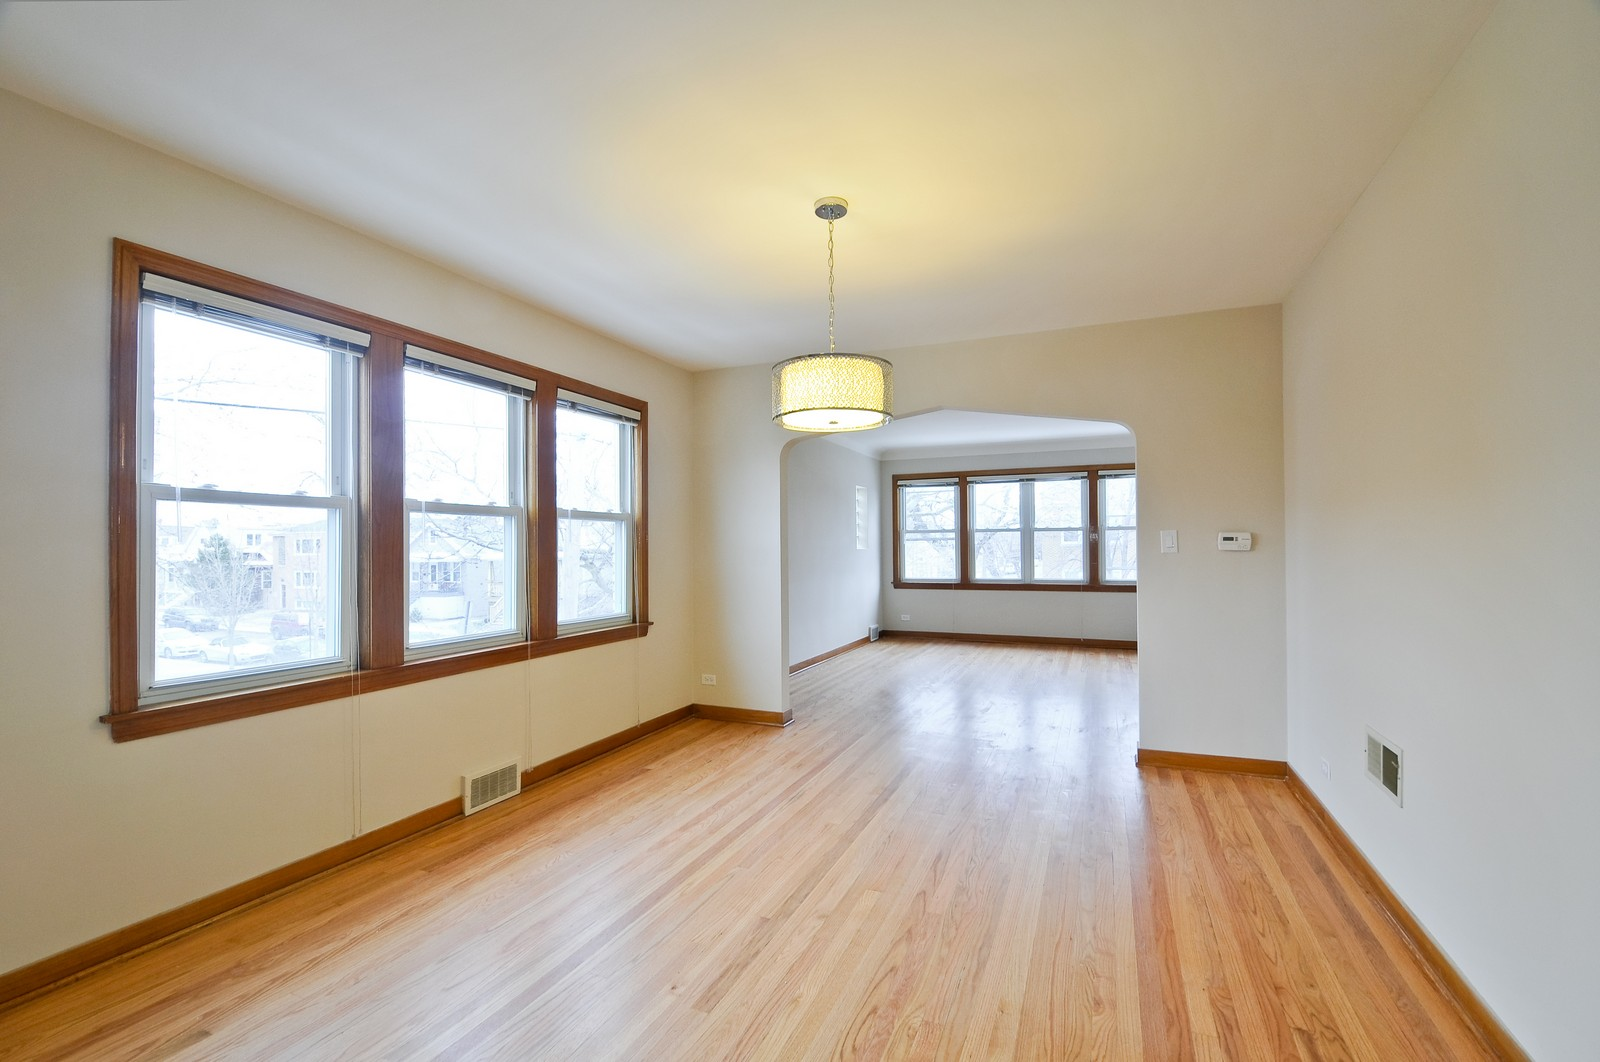 Real Estate Photography - 5457 W Schubert, Unit 1, Chicago, IL, 60639 - Living Room / Dining Room